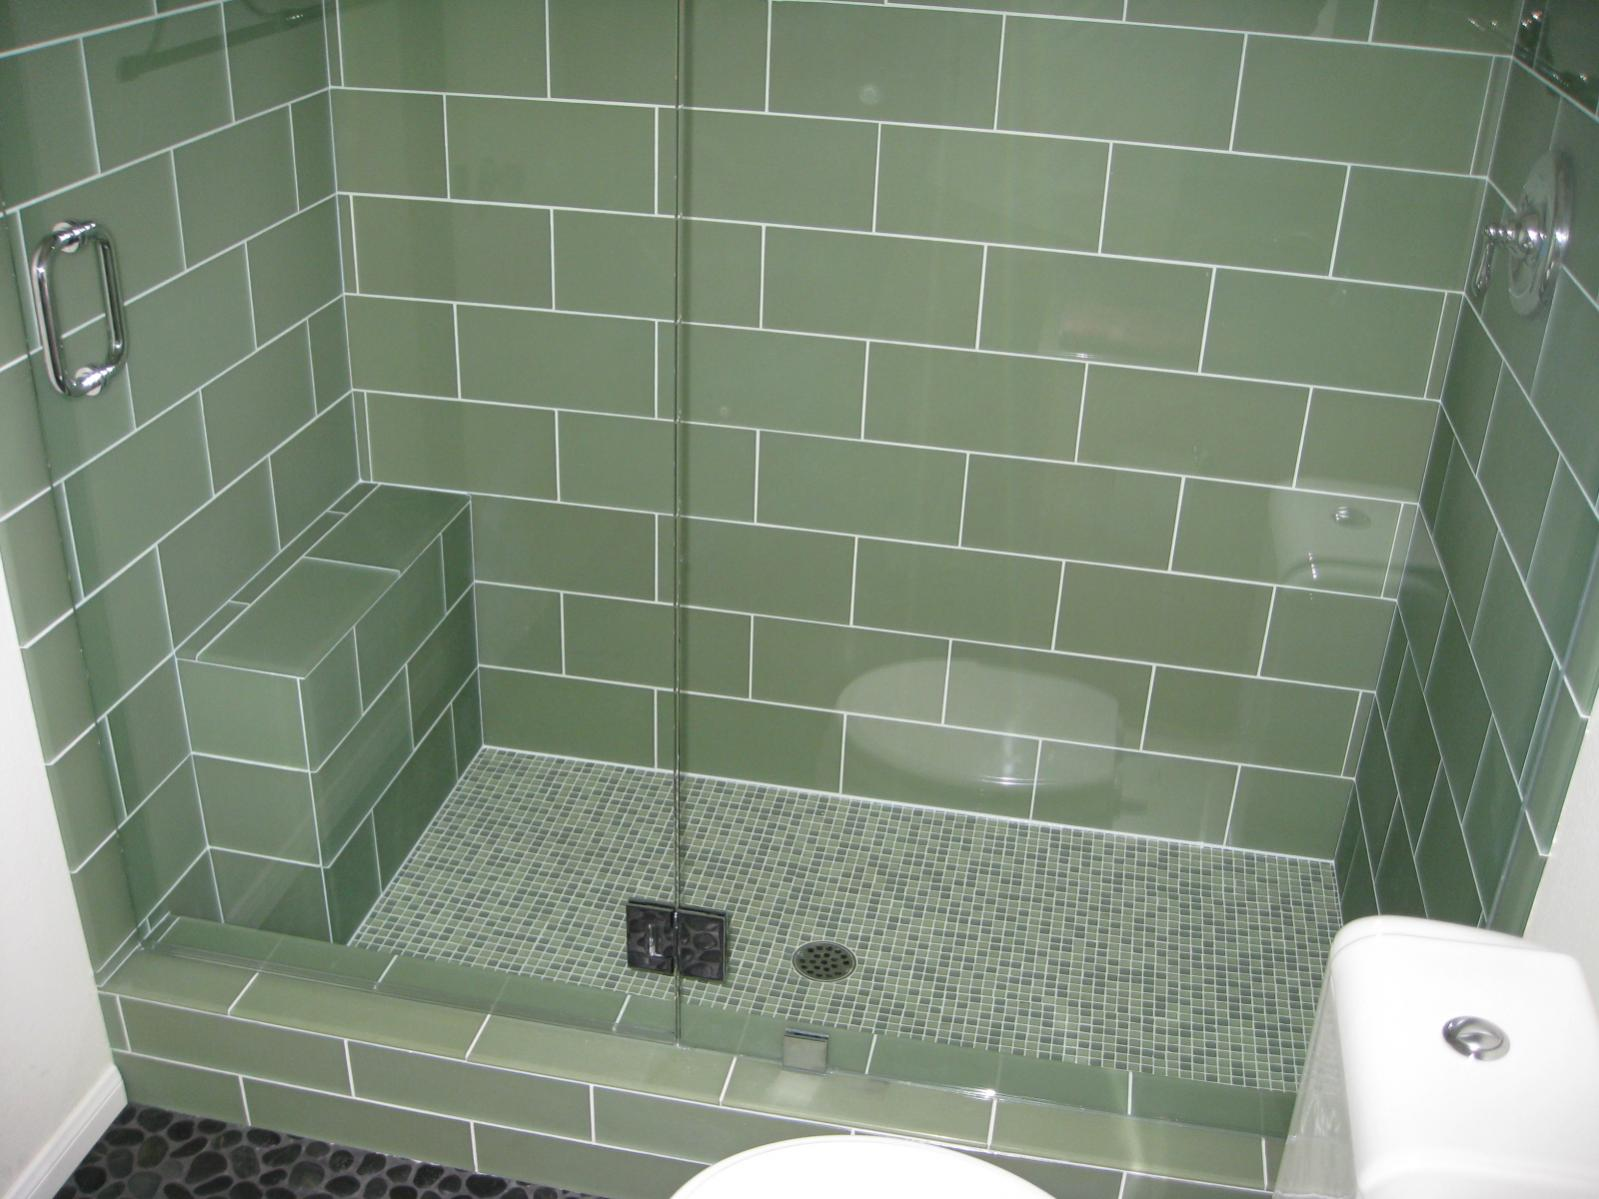 Not Using Tiles Bathroom Ideas: 26 Nice Pictures And Ideas Of Pebble Bath Tiles